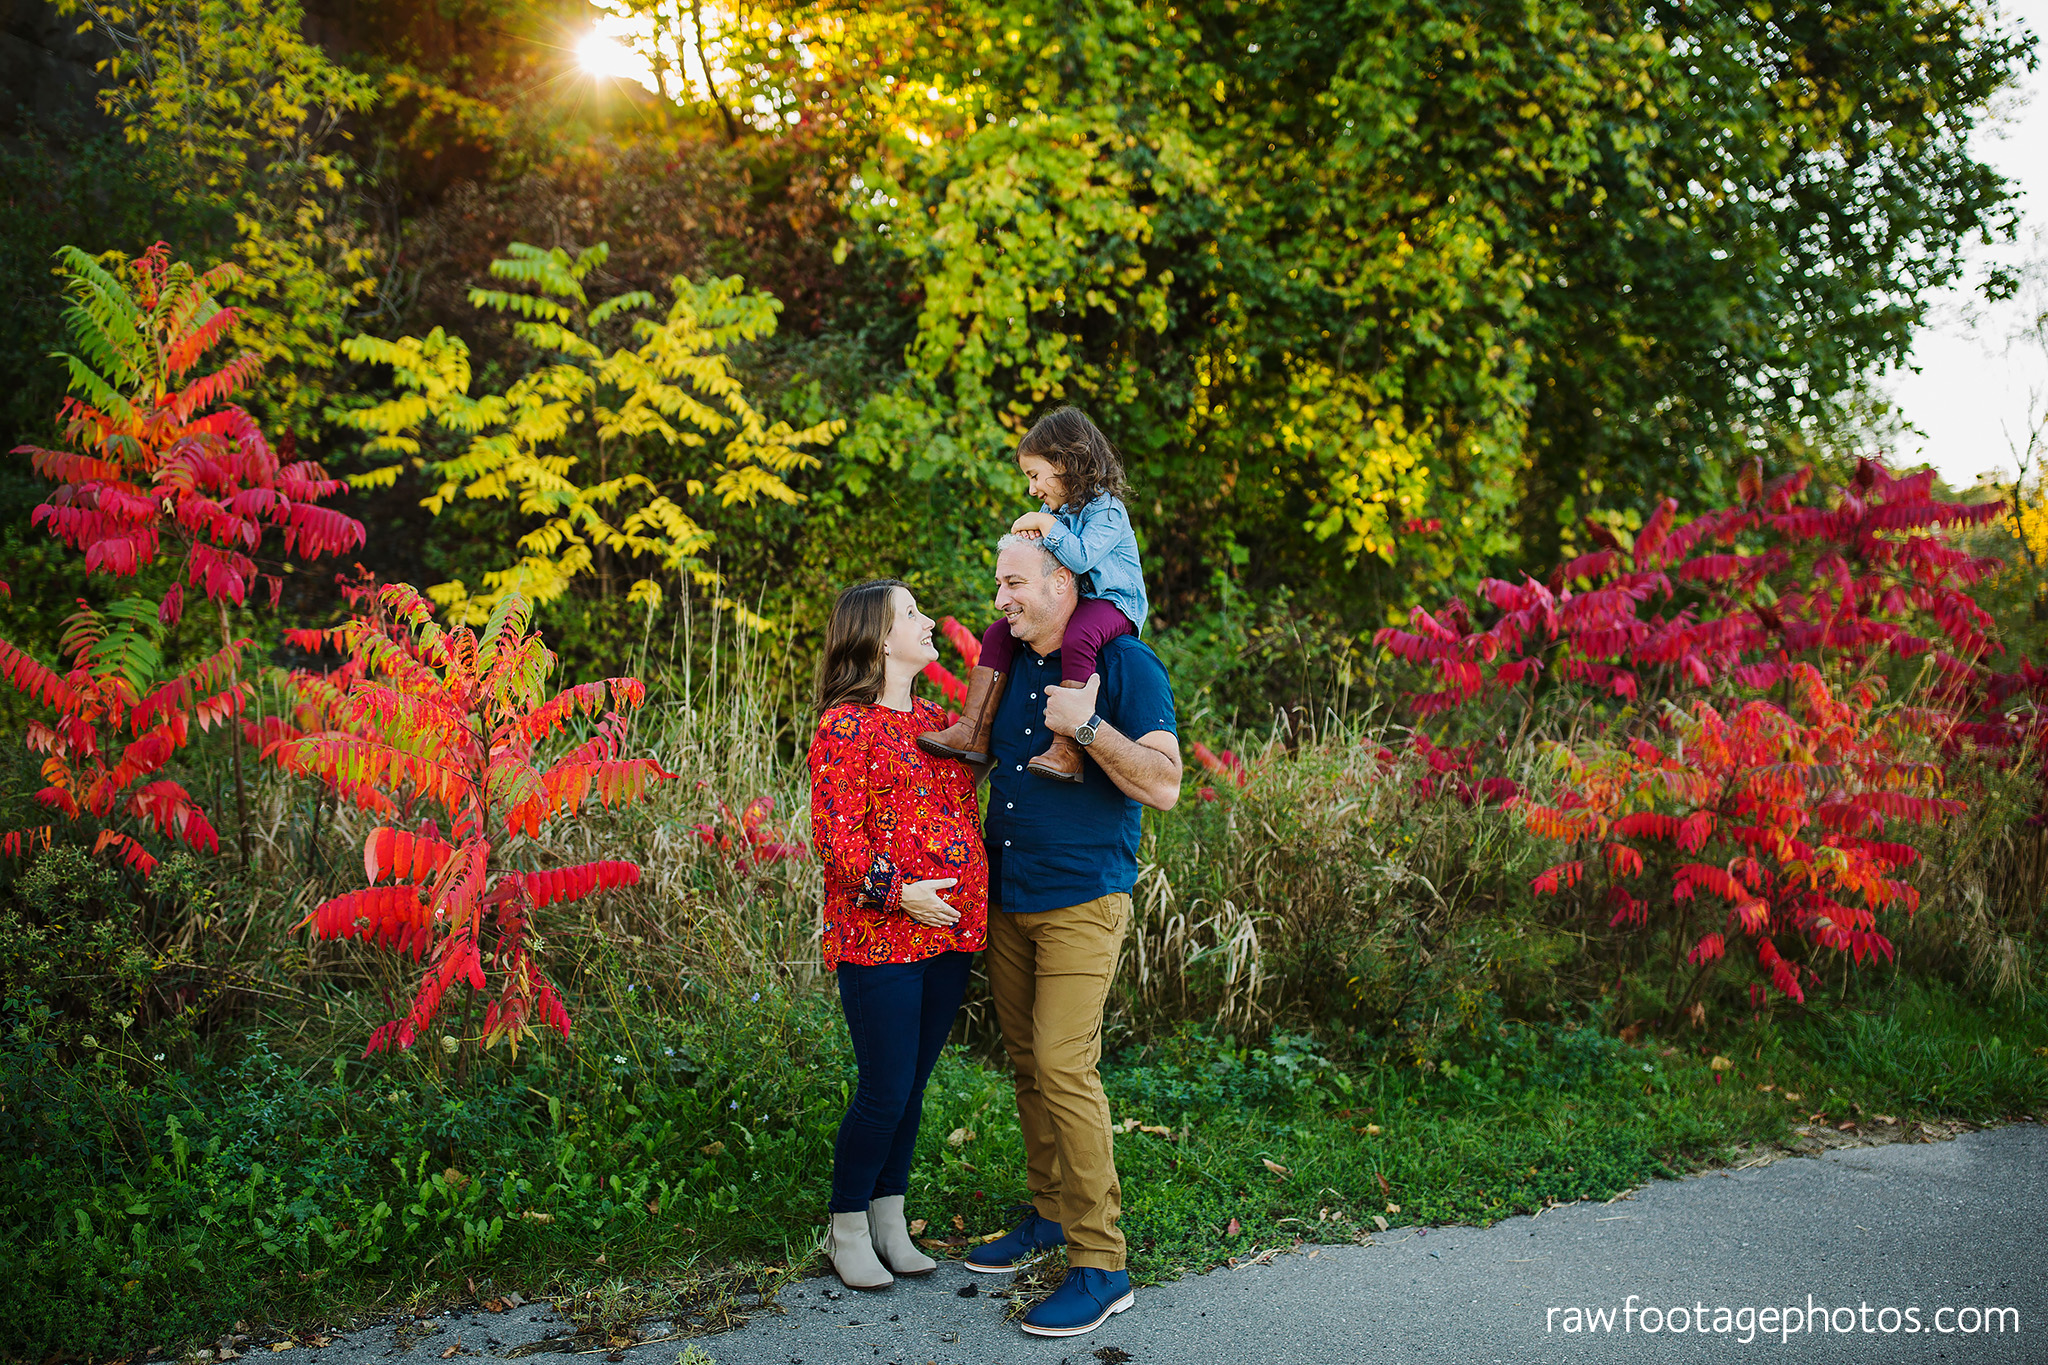 london_ontario_family_photographer-golden_hour_maternity_session-raw_footage_photography031.jpg